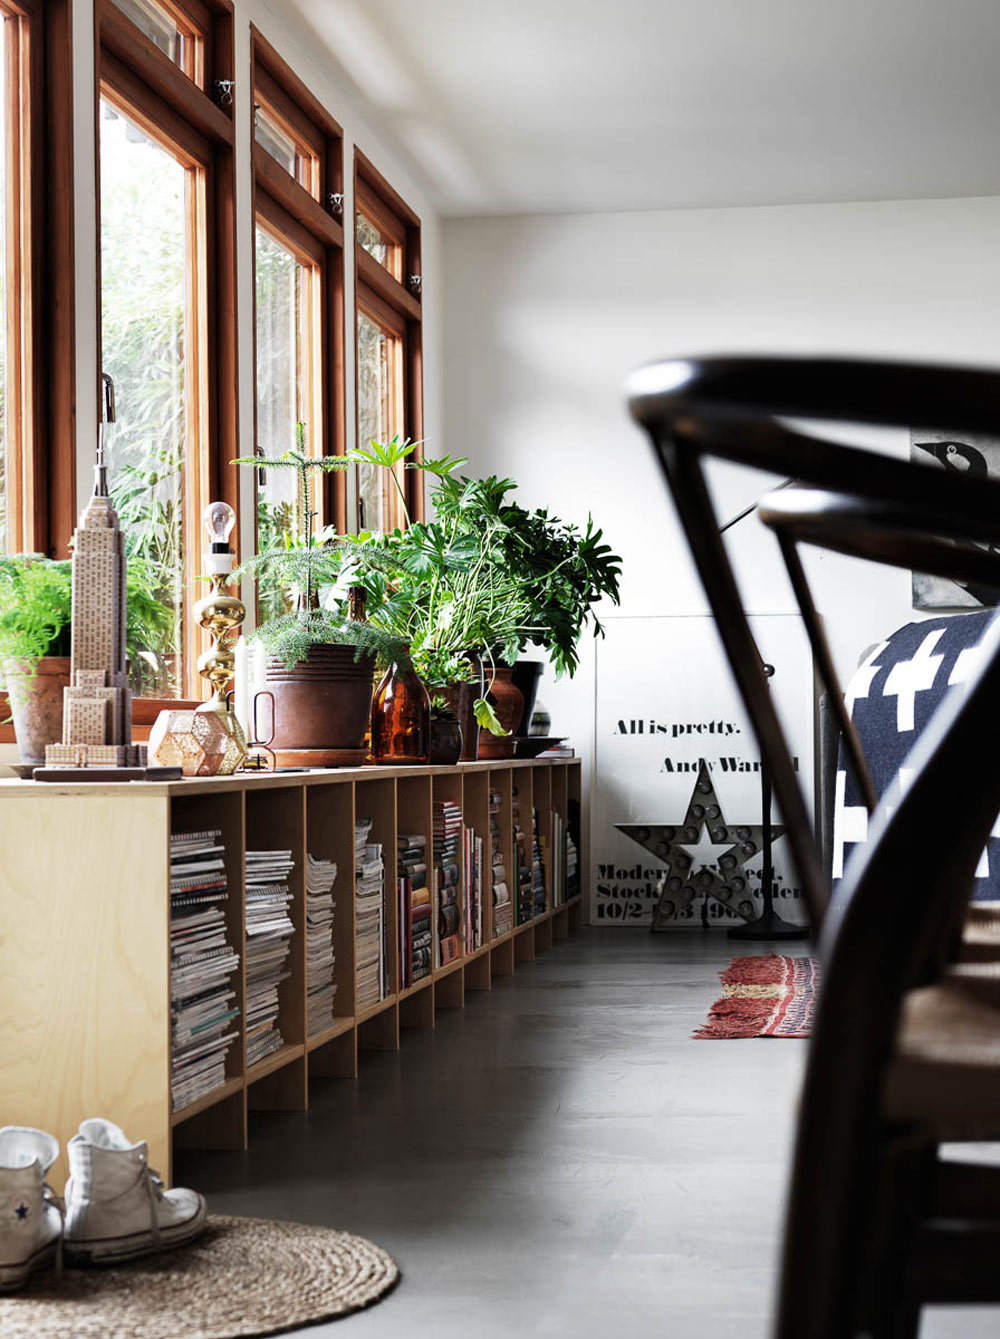 Oracle, Fox, Sunday, Sanctuary, Tina, Hellberg, Minimal, Scandinavian, Interiors,  Indoor, Plants, Bookshelf